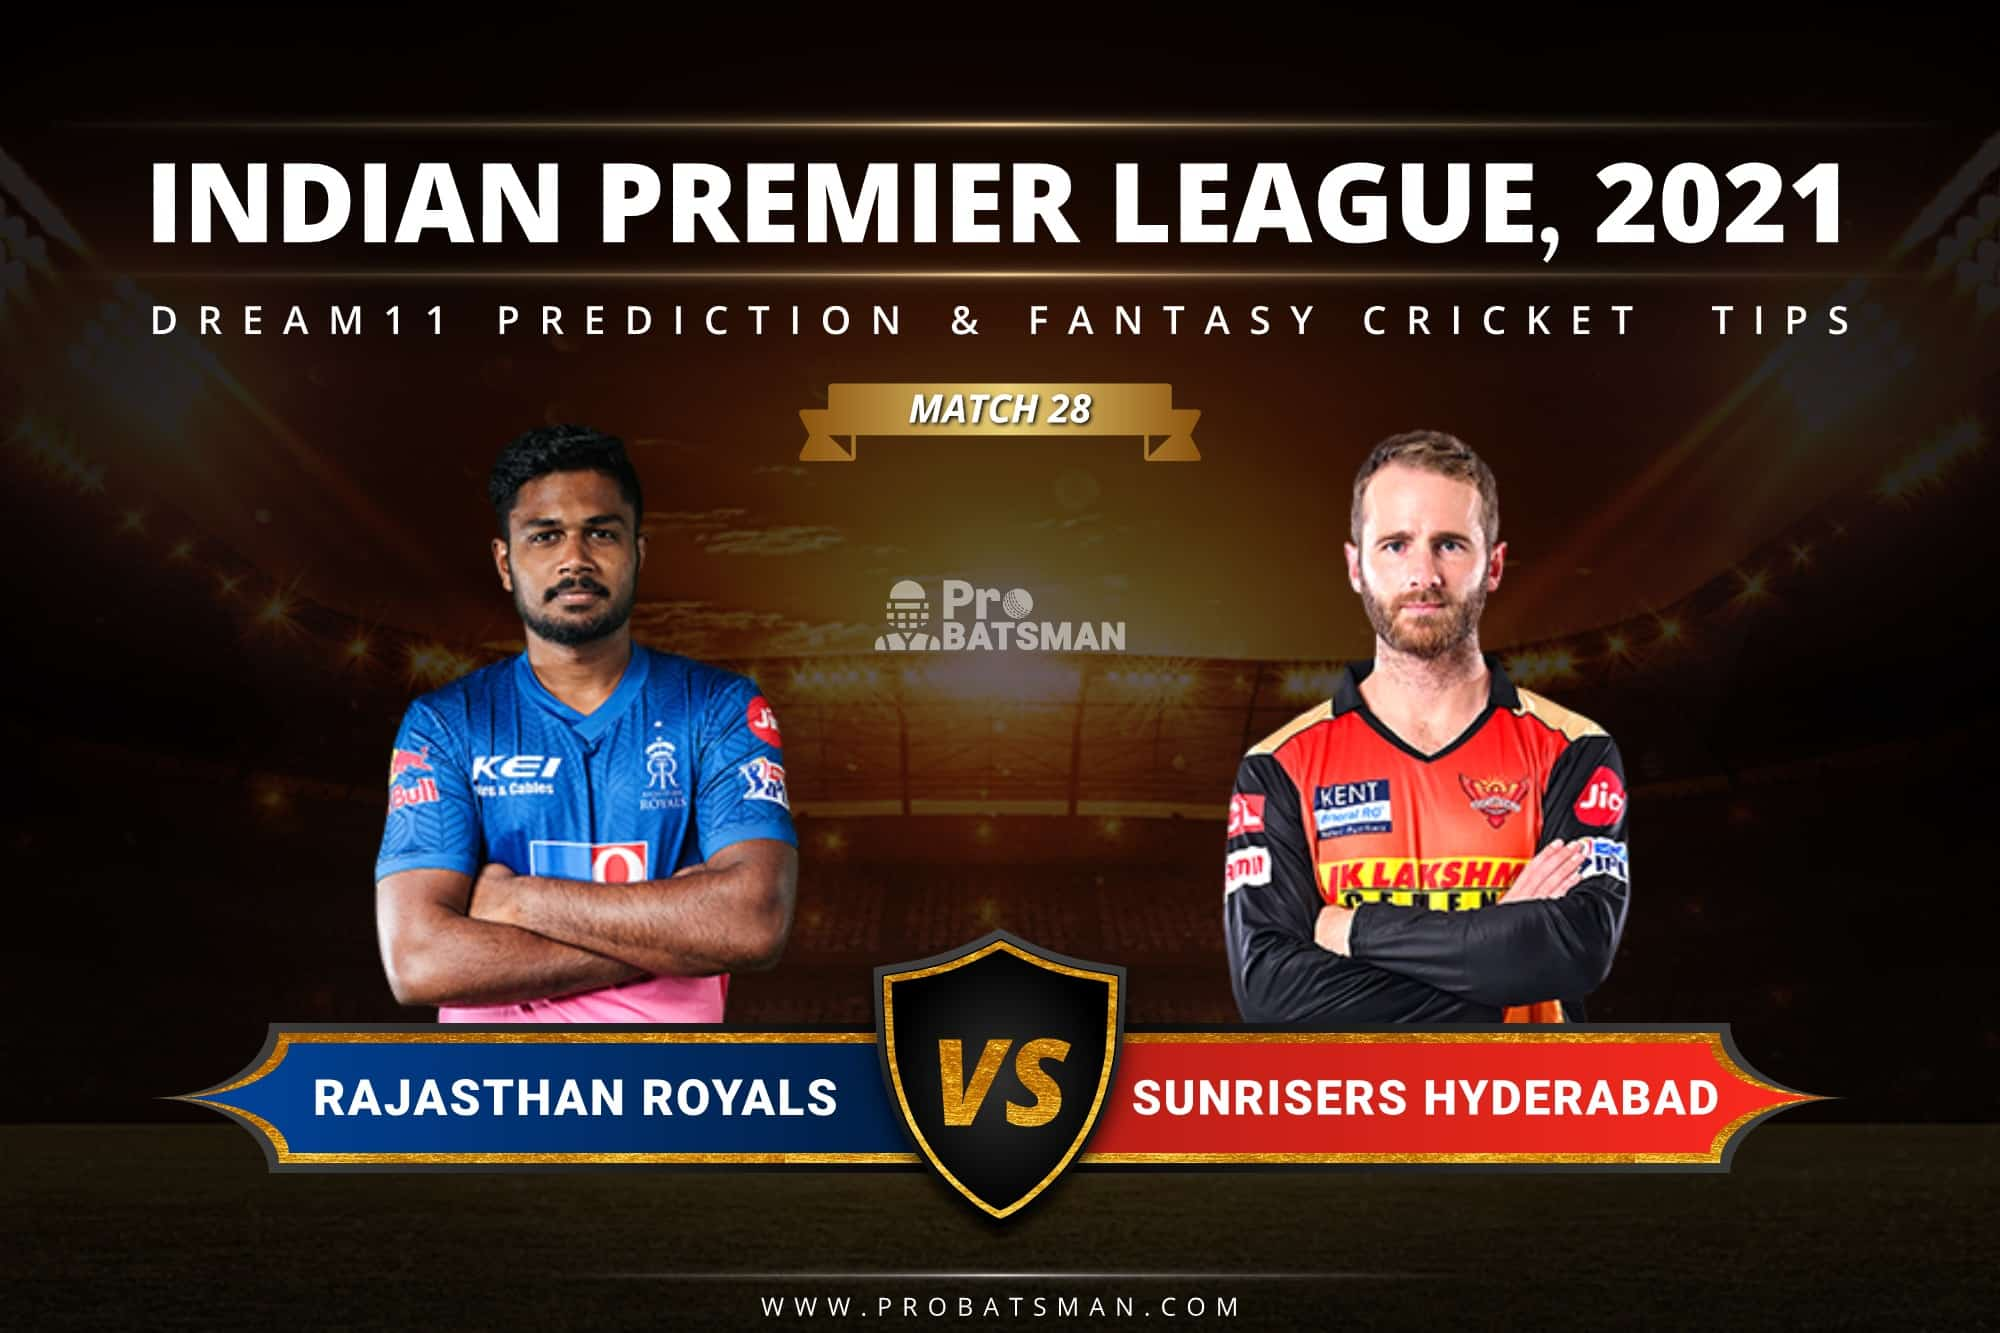 RR vs SRH Dream11 Prediction: Fantasy Cricket Tips, Playing XI, Pitch Report, Stats & Injury Updates of Match 28, IPL 2021